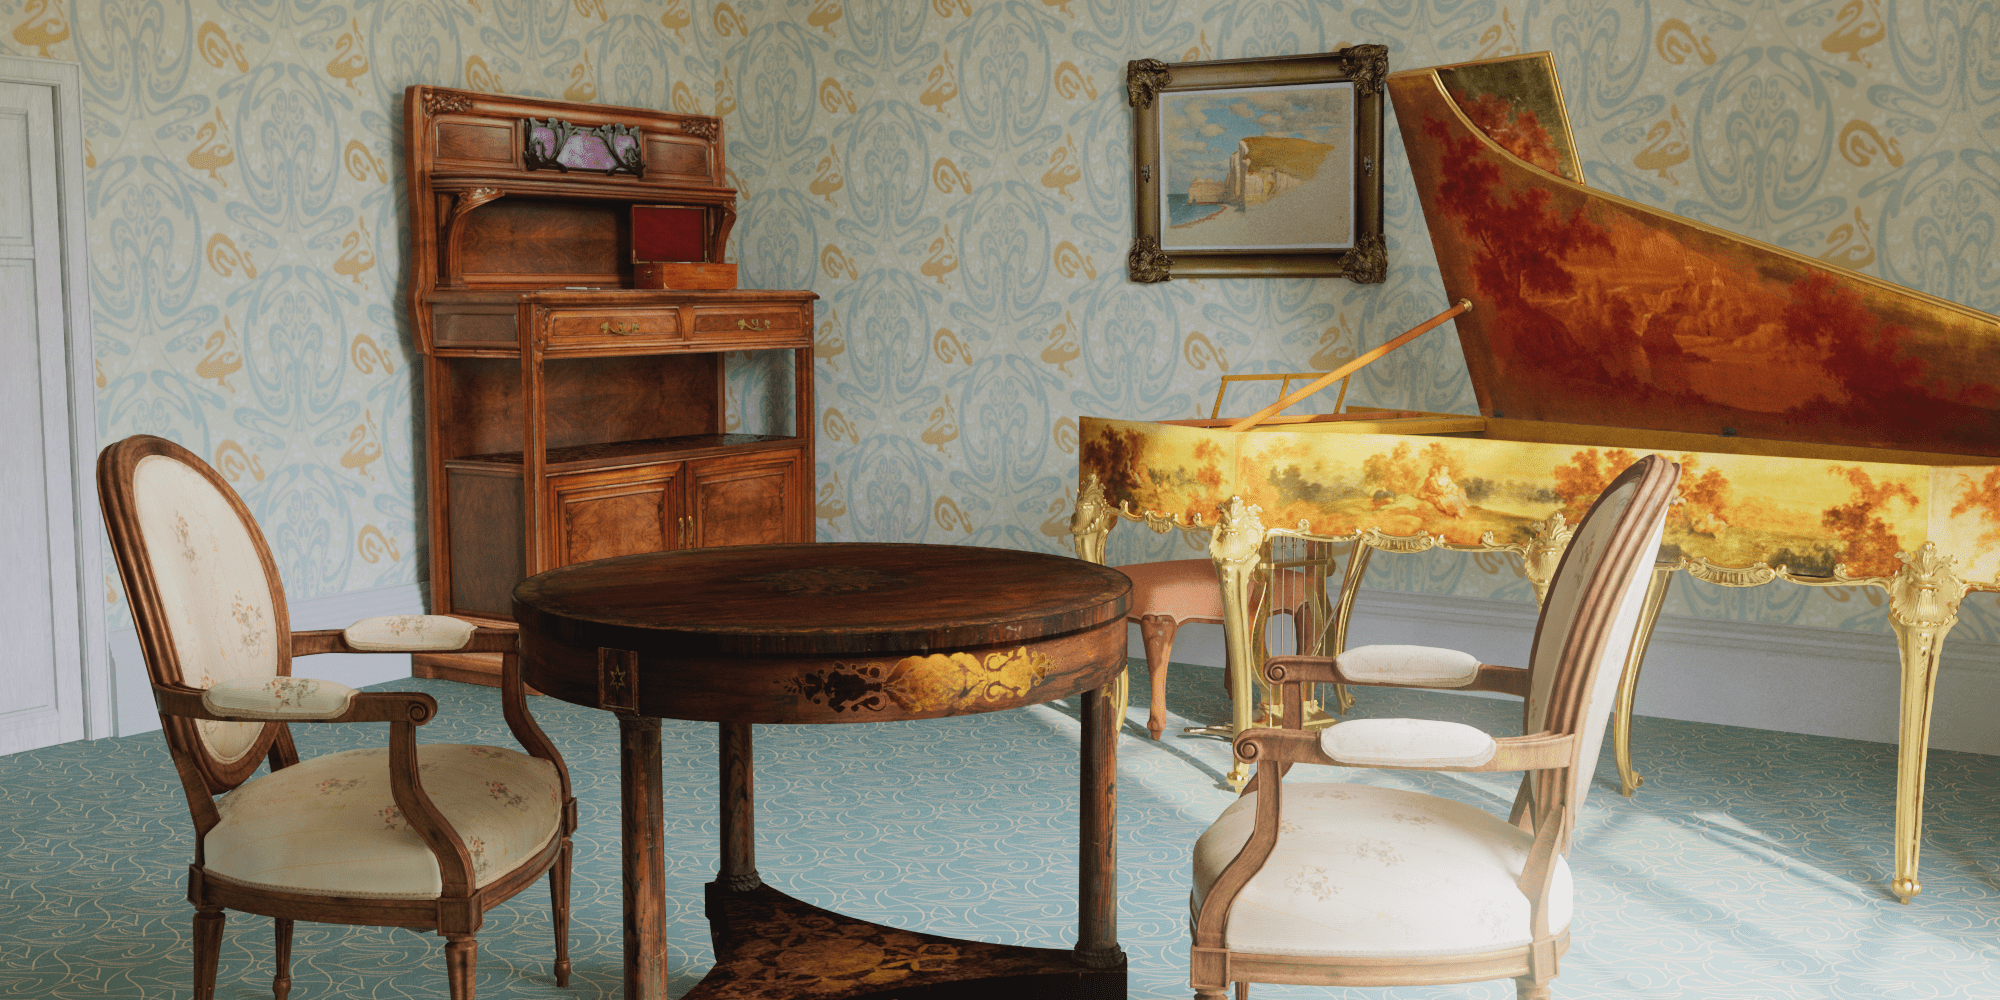 A virtual rendering of a period sitting room